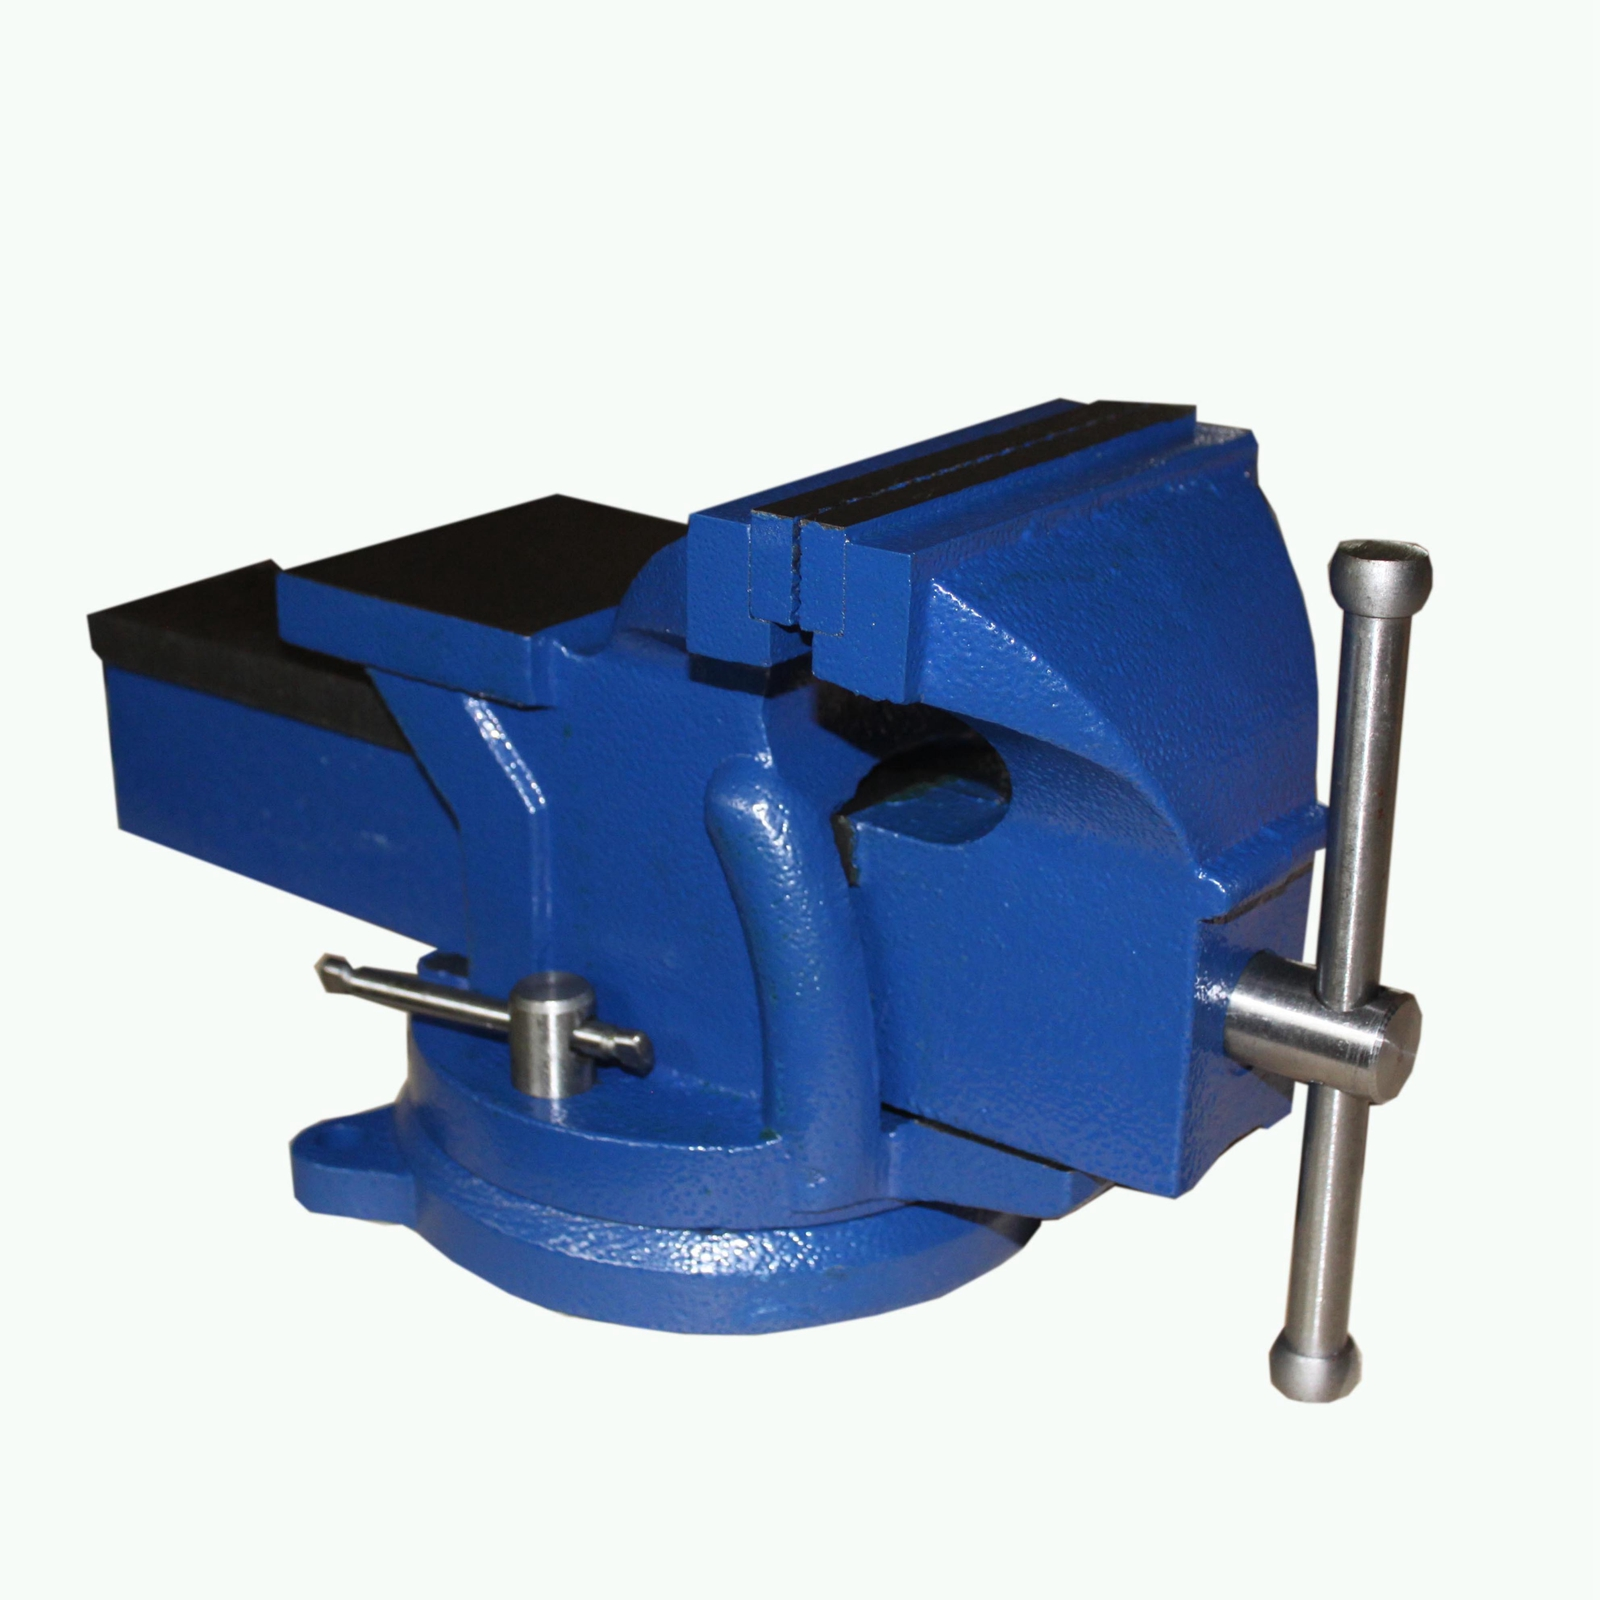 bench vice specification. sentinel foxhunter bench vice vise jaw clamp swivel base for workbench table garage tool specification